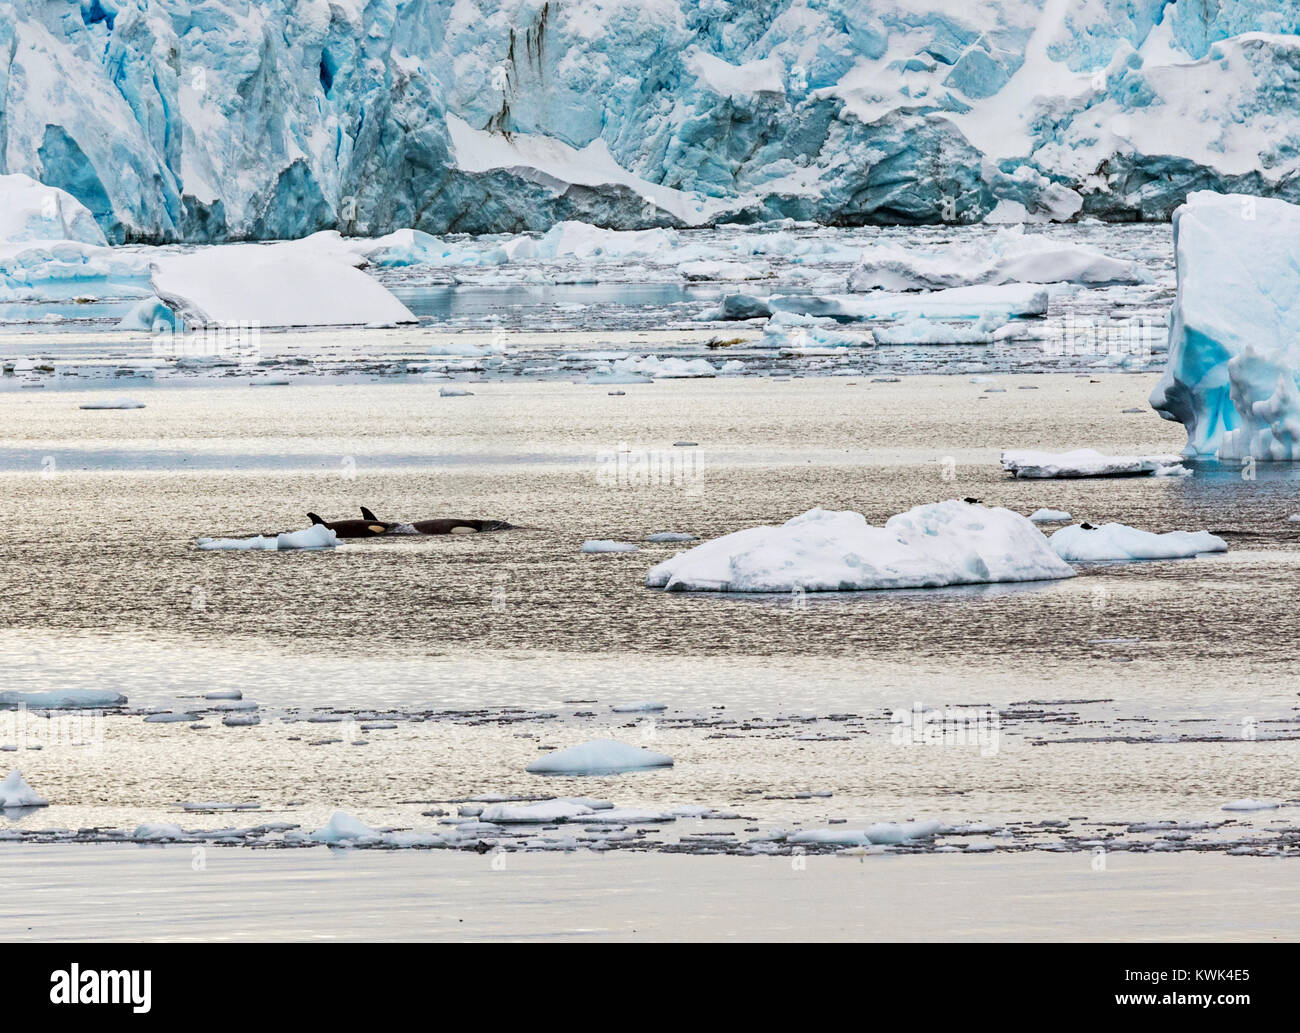 Killer whales; orca; Orcinus orca); whale; oceanic dolphin; Antarctica - Stock Image